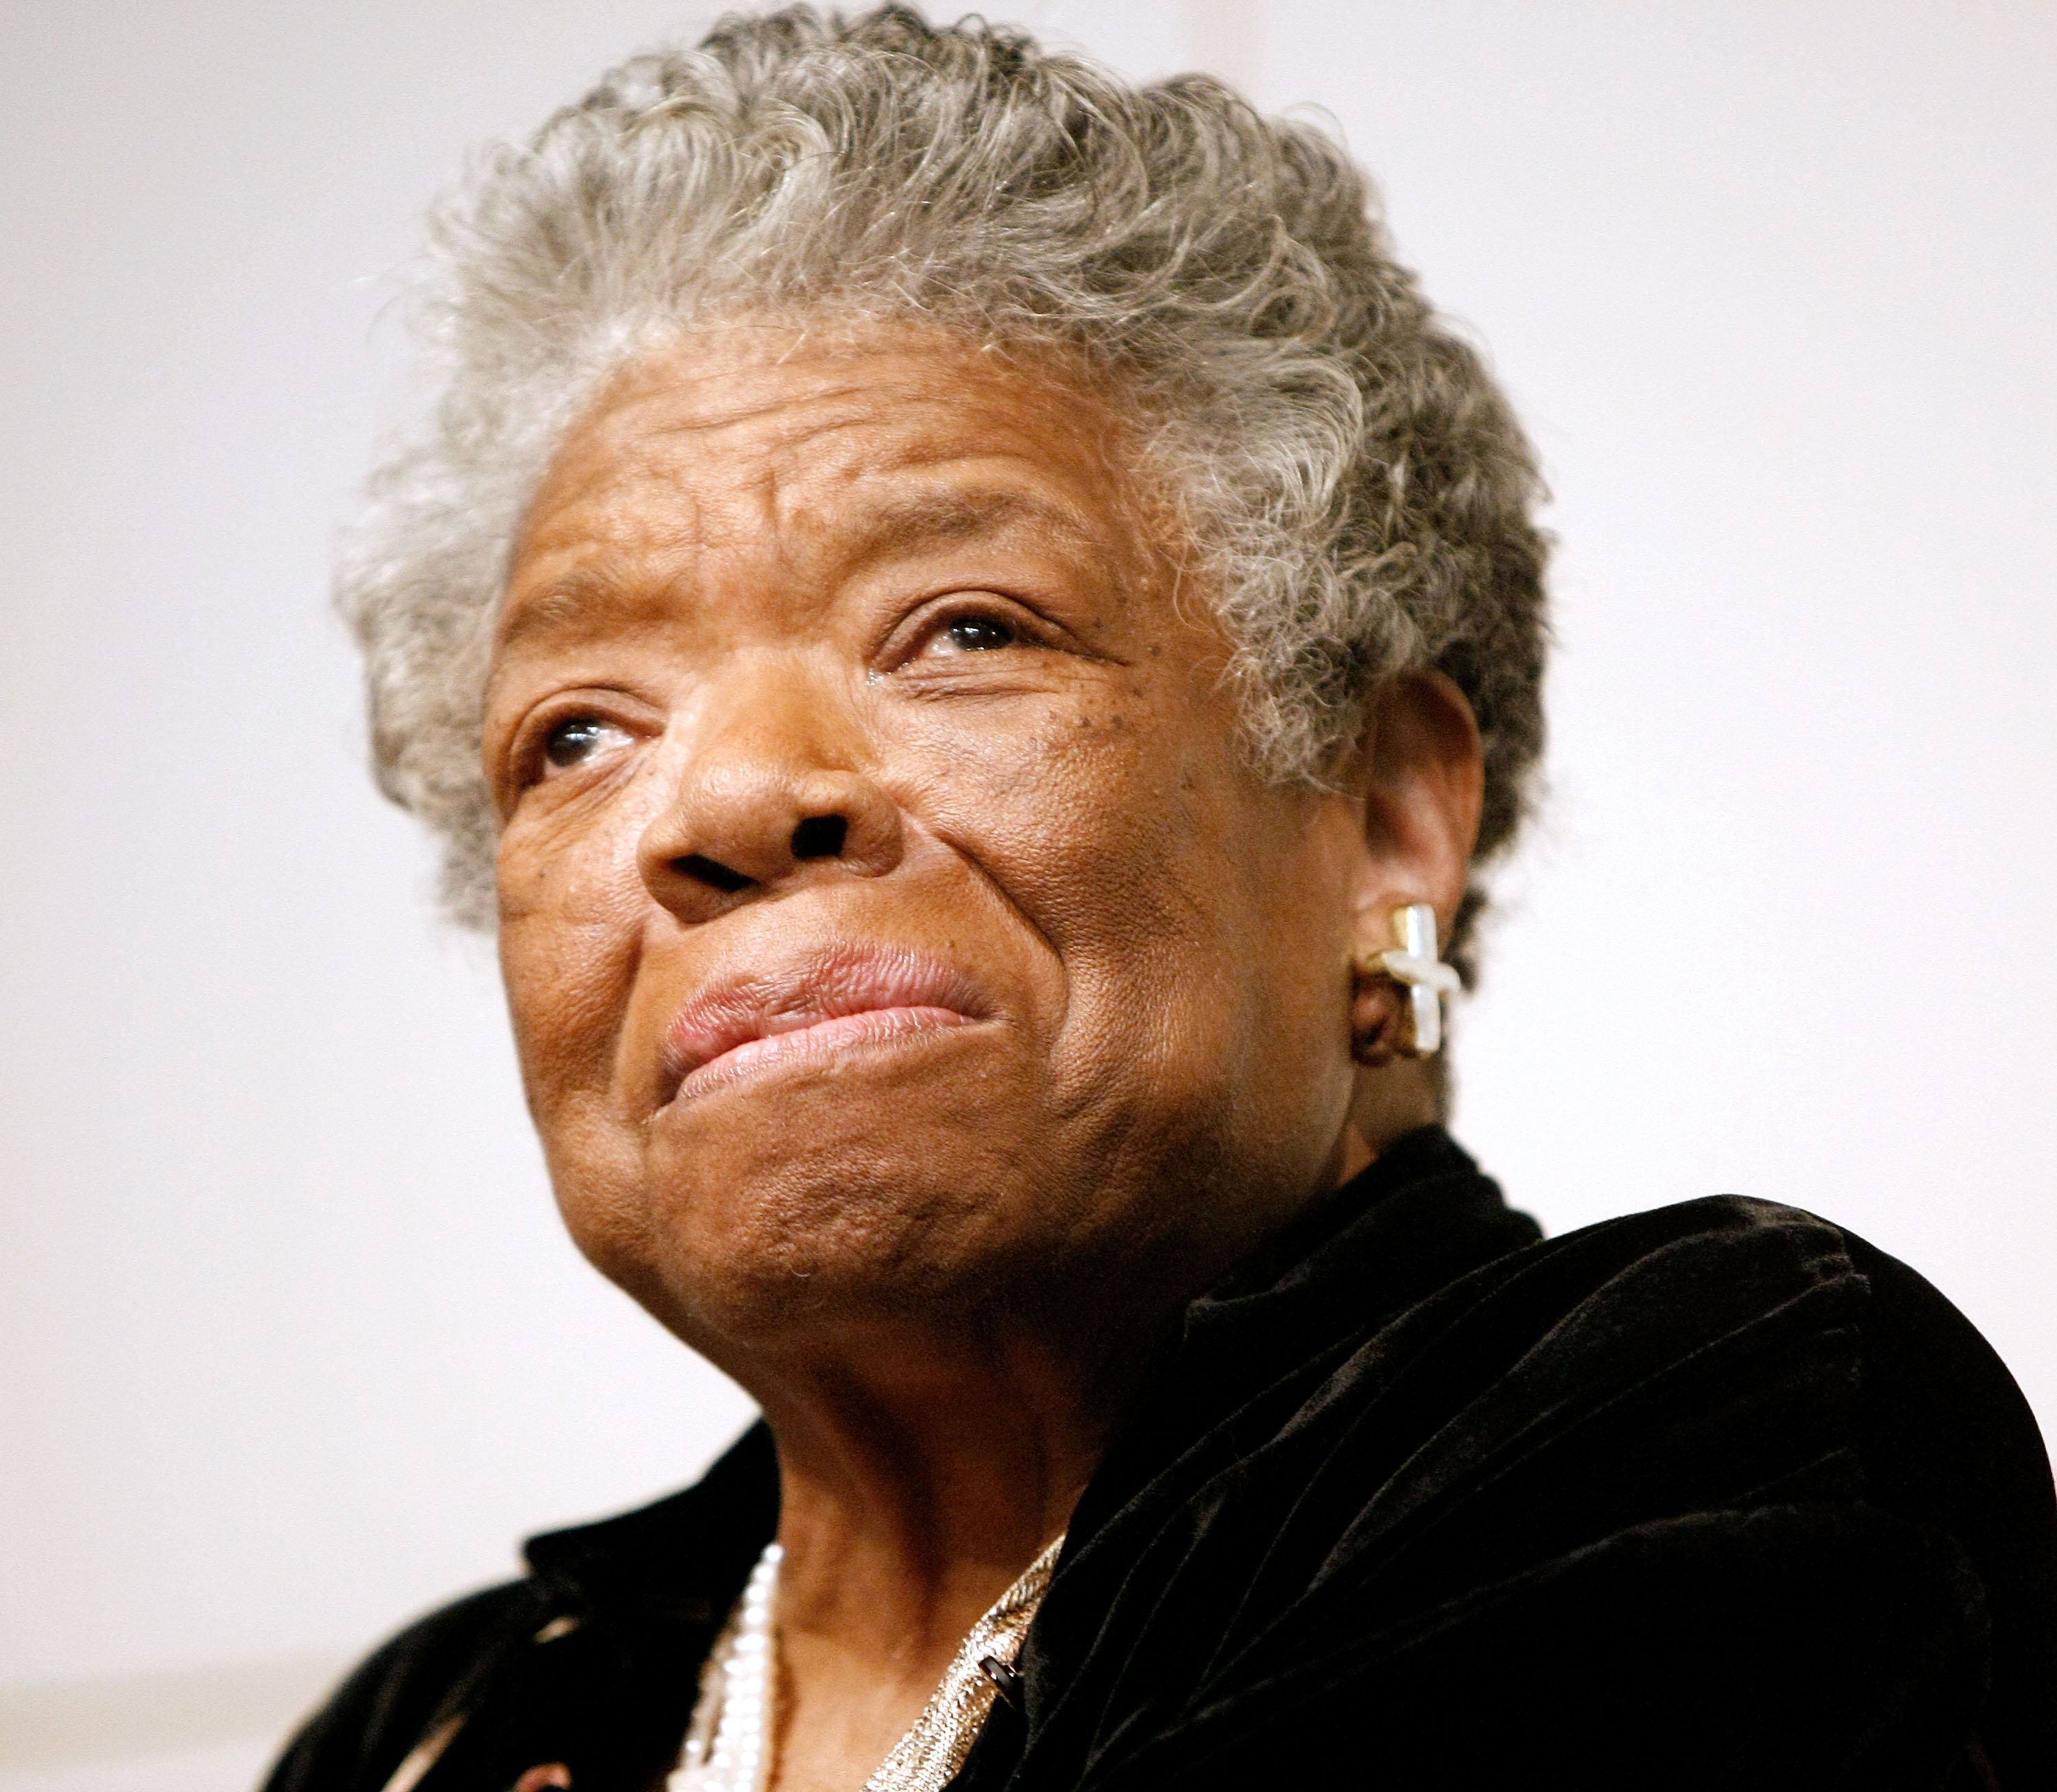 Poet and Author Maya Angelou signs copies of  Maya Angelou: Letter to My Daughter  at Barnes & Noble in Union Square on October 30, 2008 in New York City.